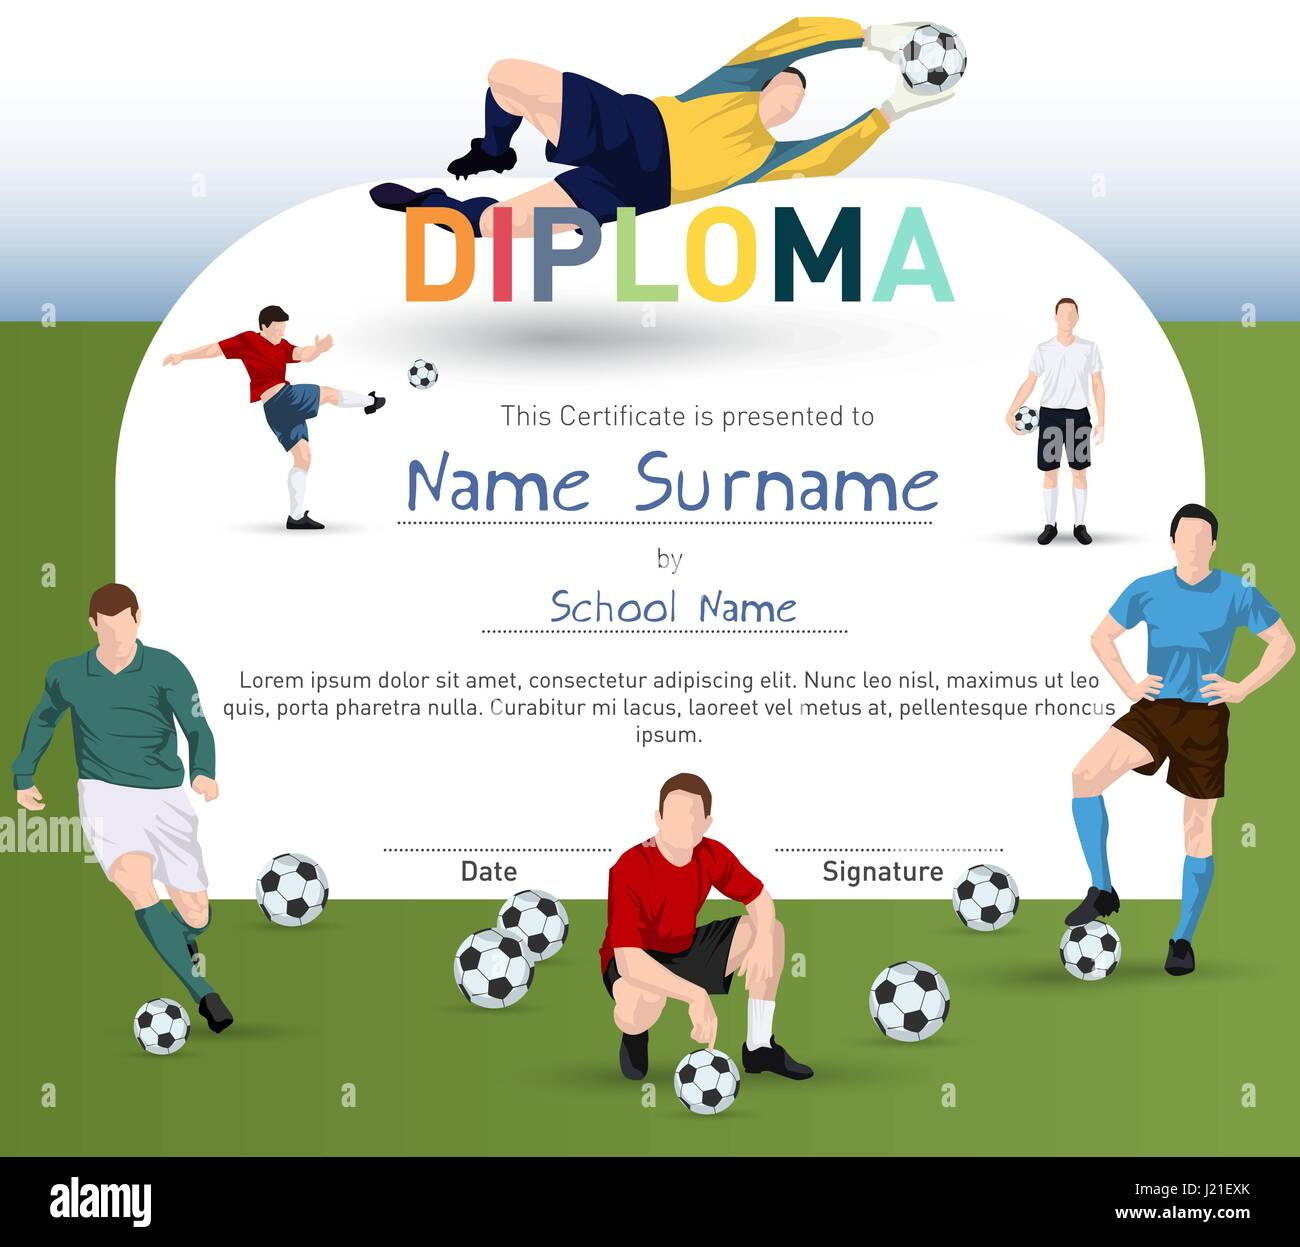 Football Design Vector Background Art Stockfotos & Football Design ...